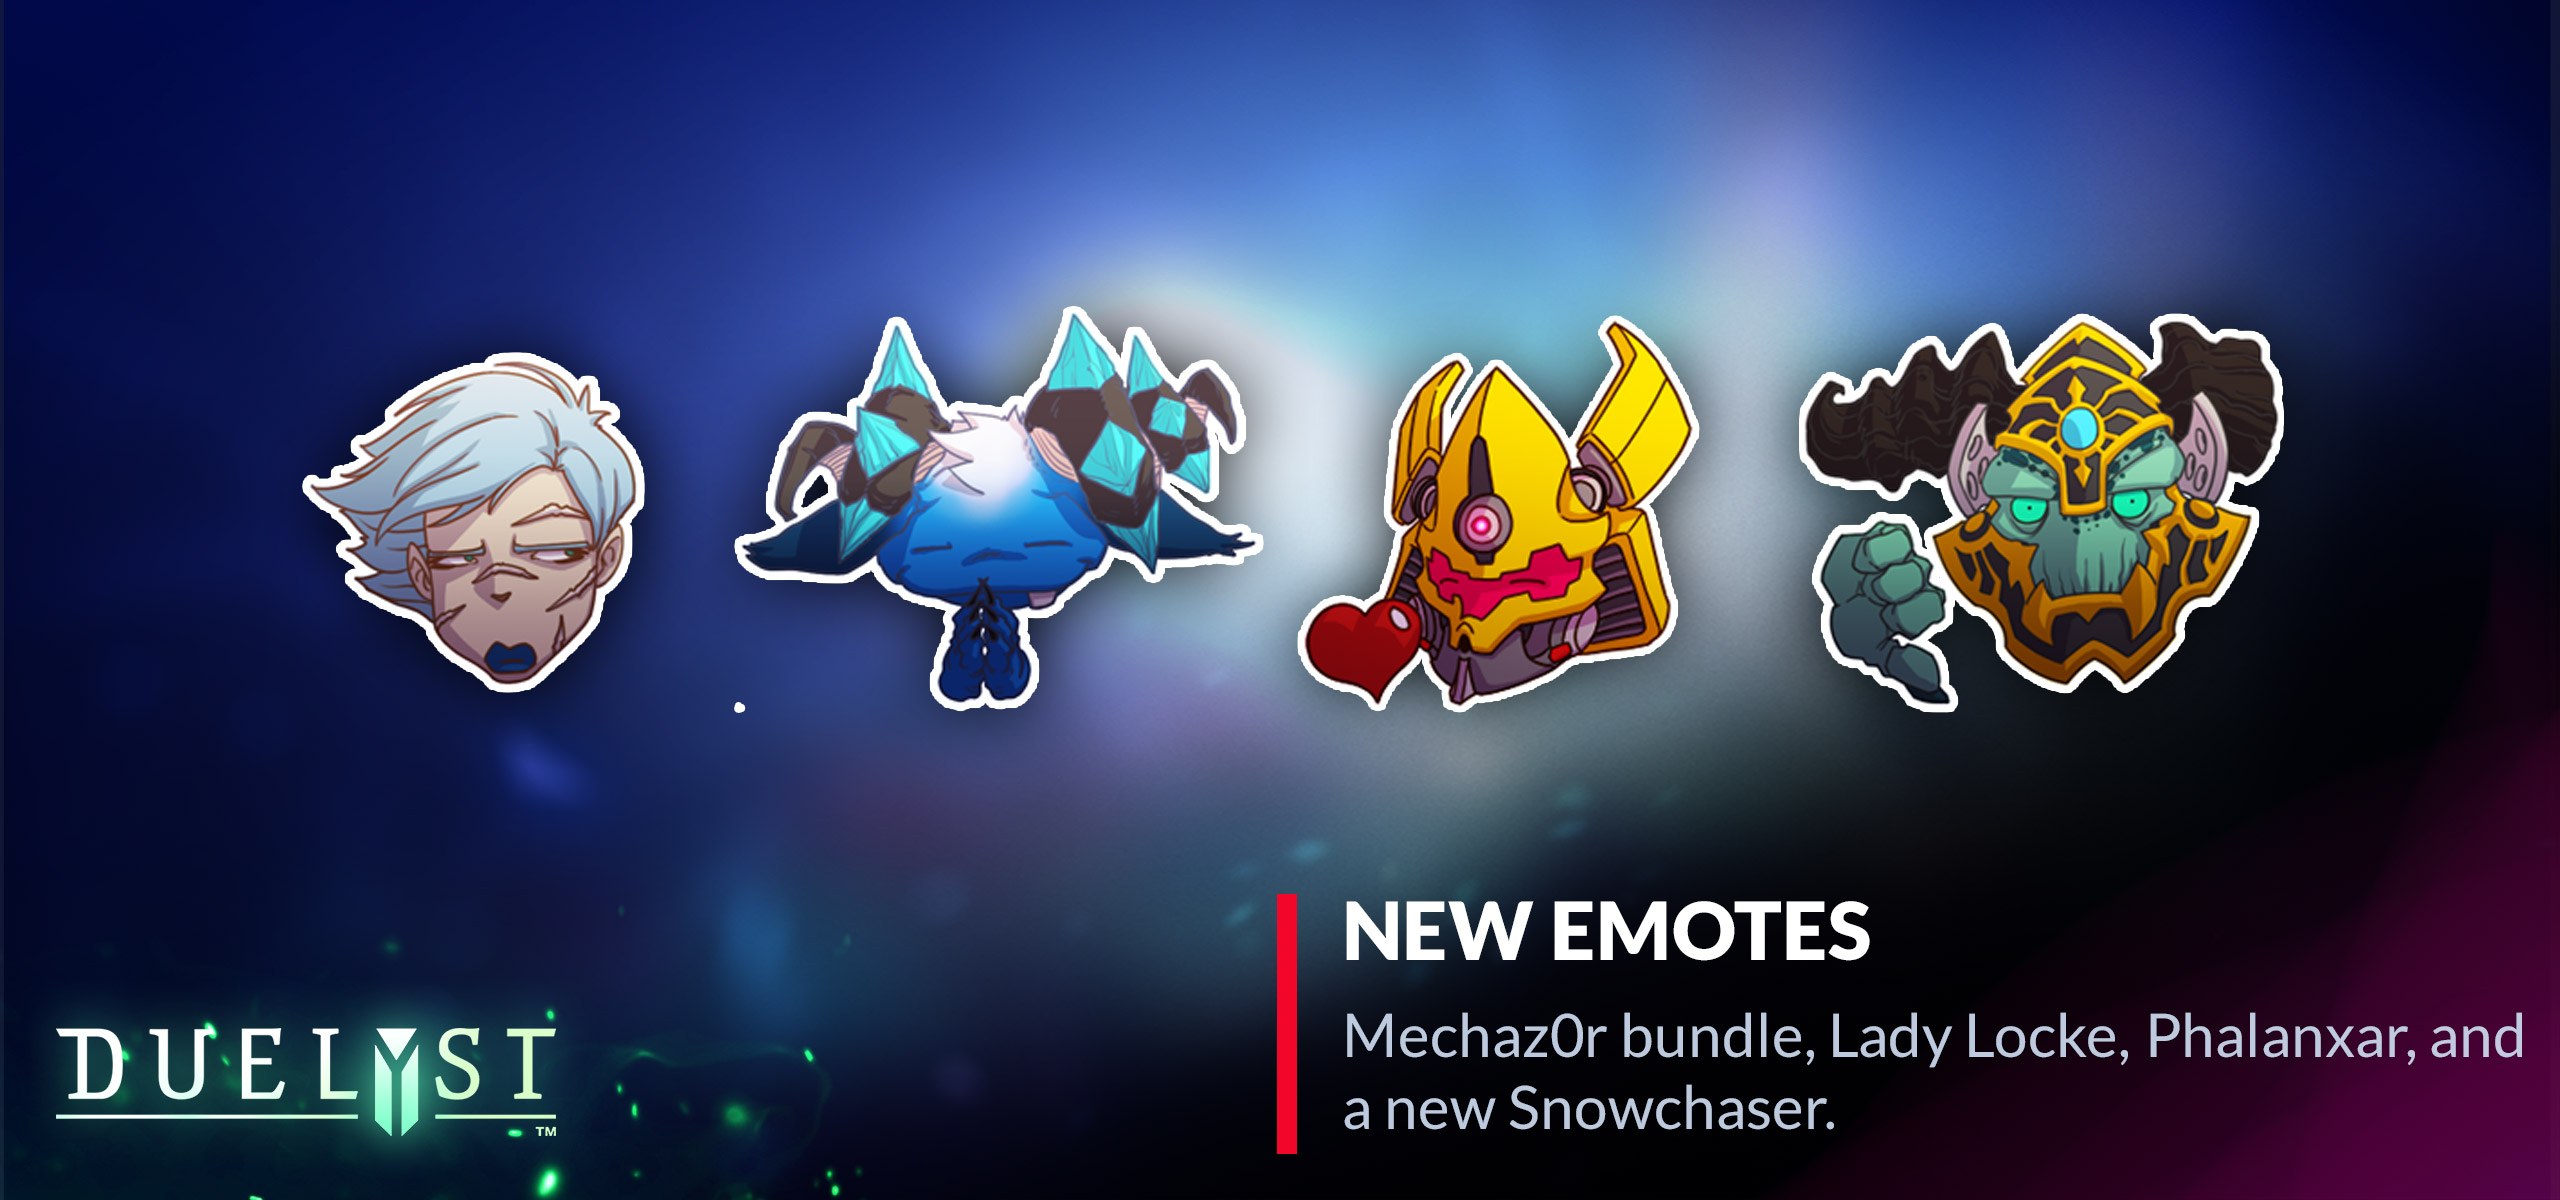 duelyst_august_emotes